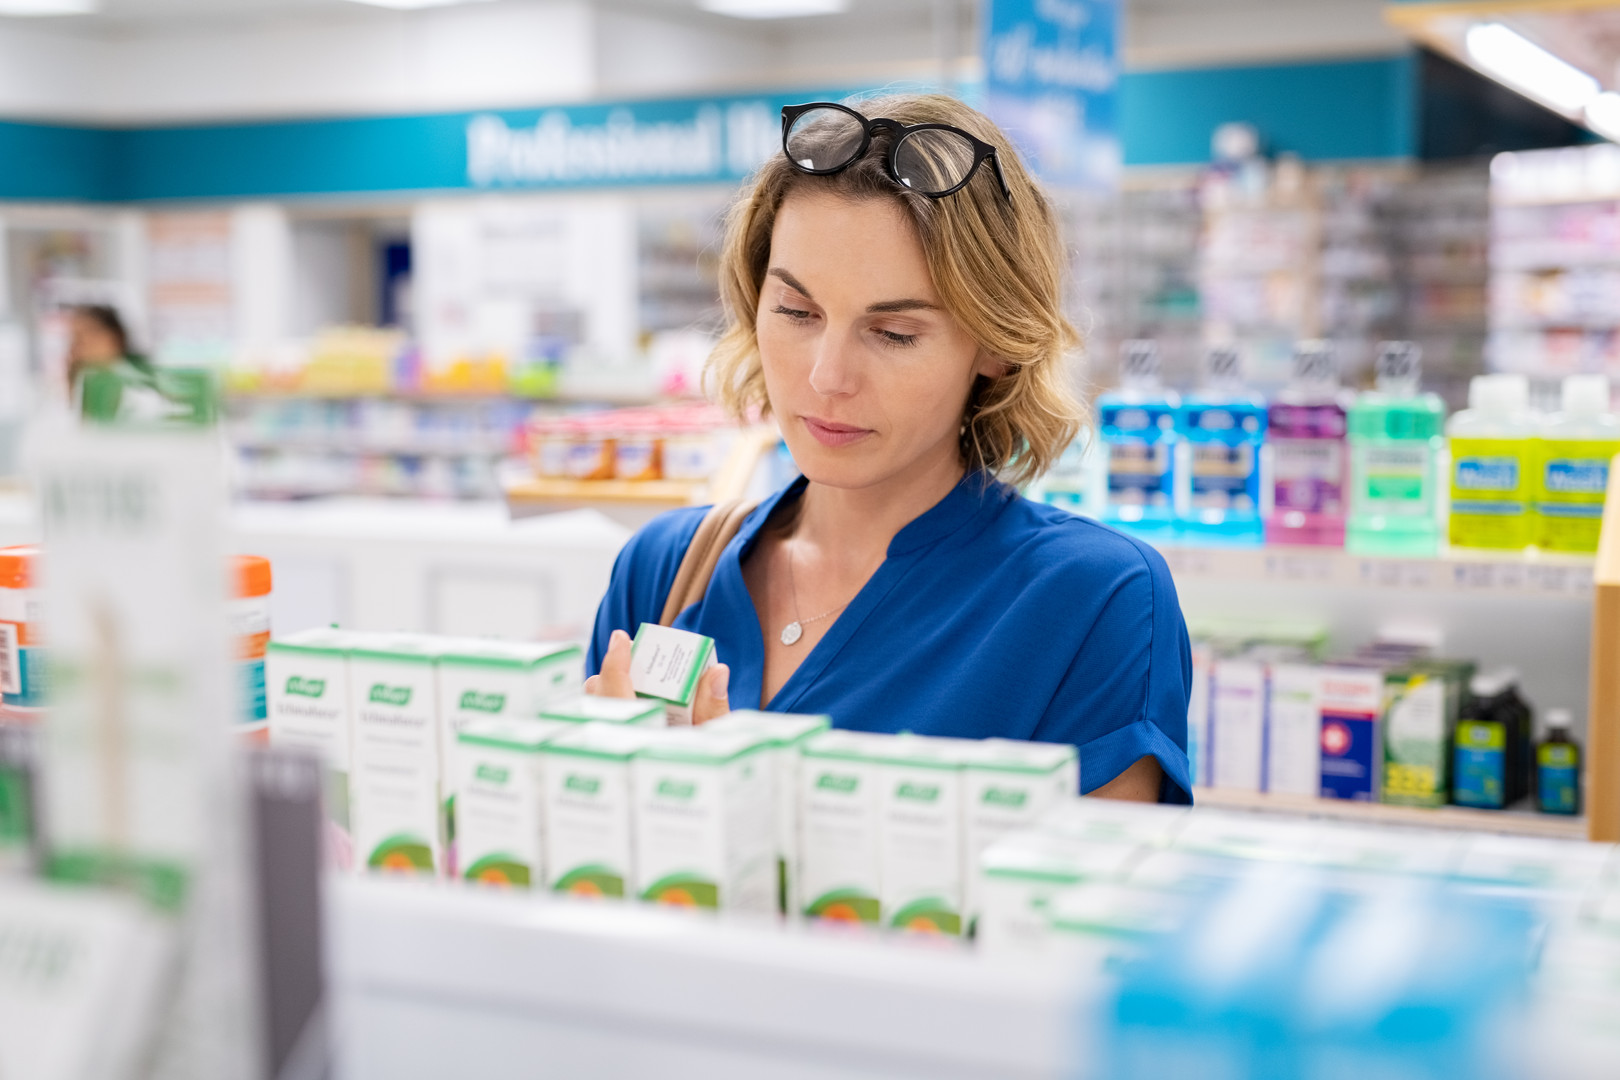 woman-choosing-product-in-pharmacy-VE9TY